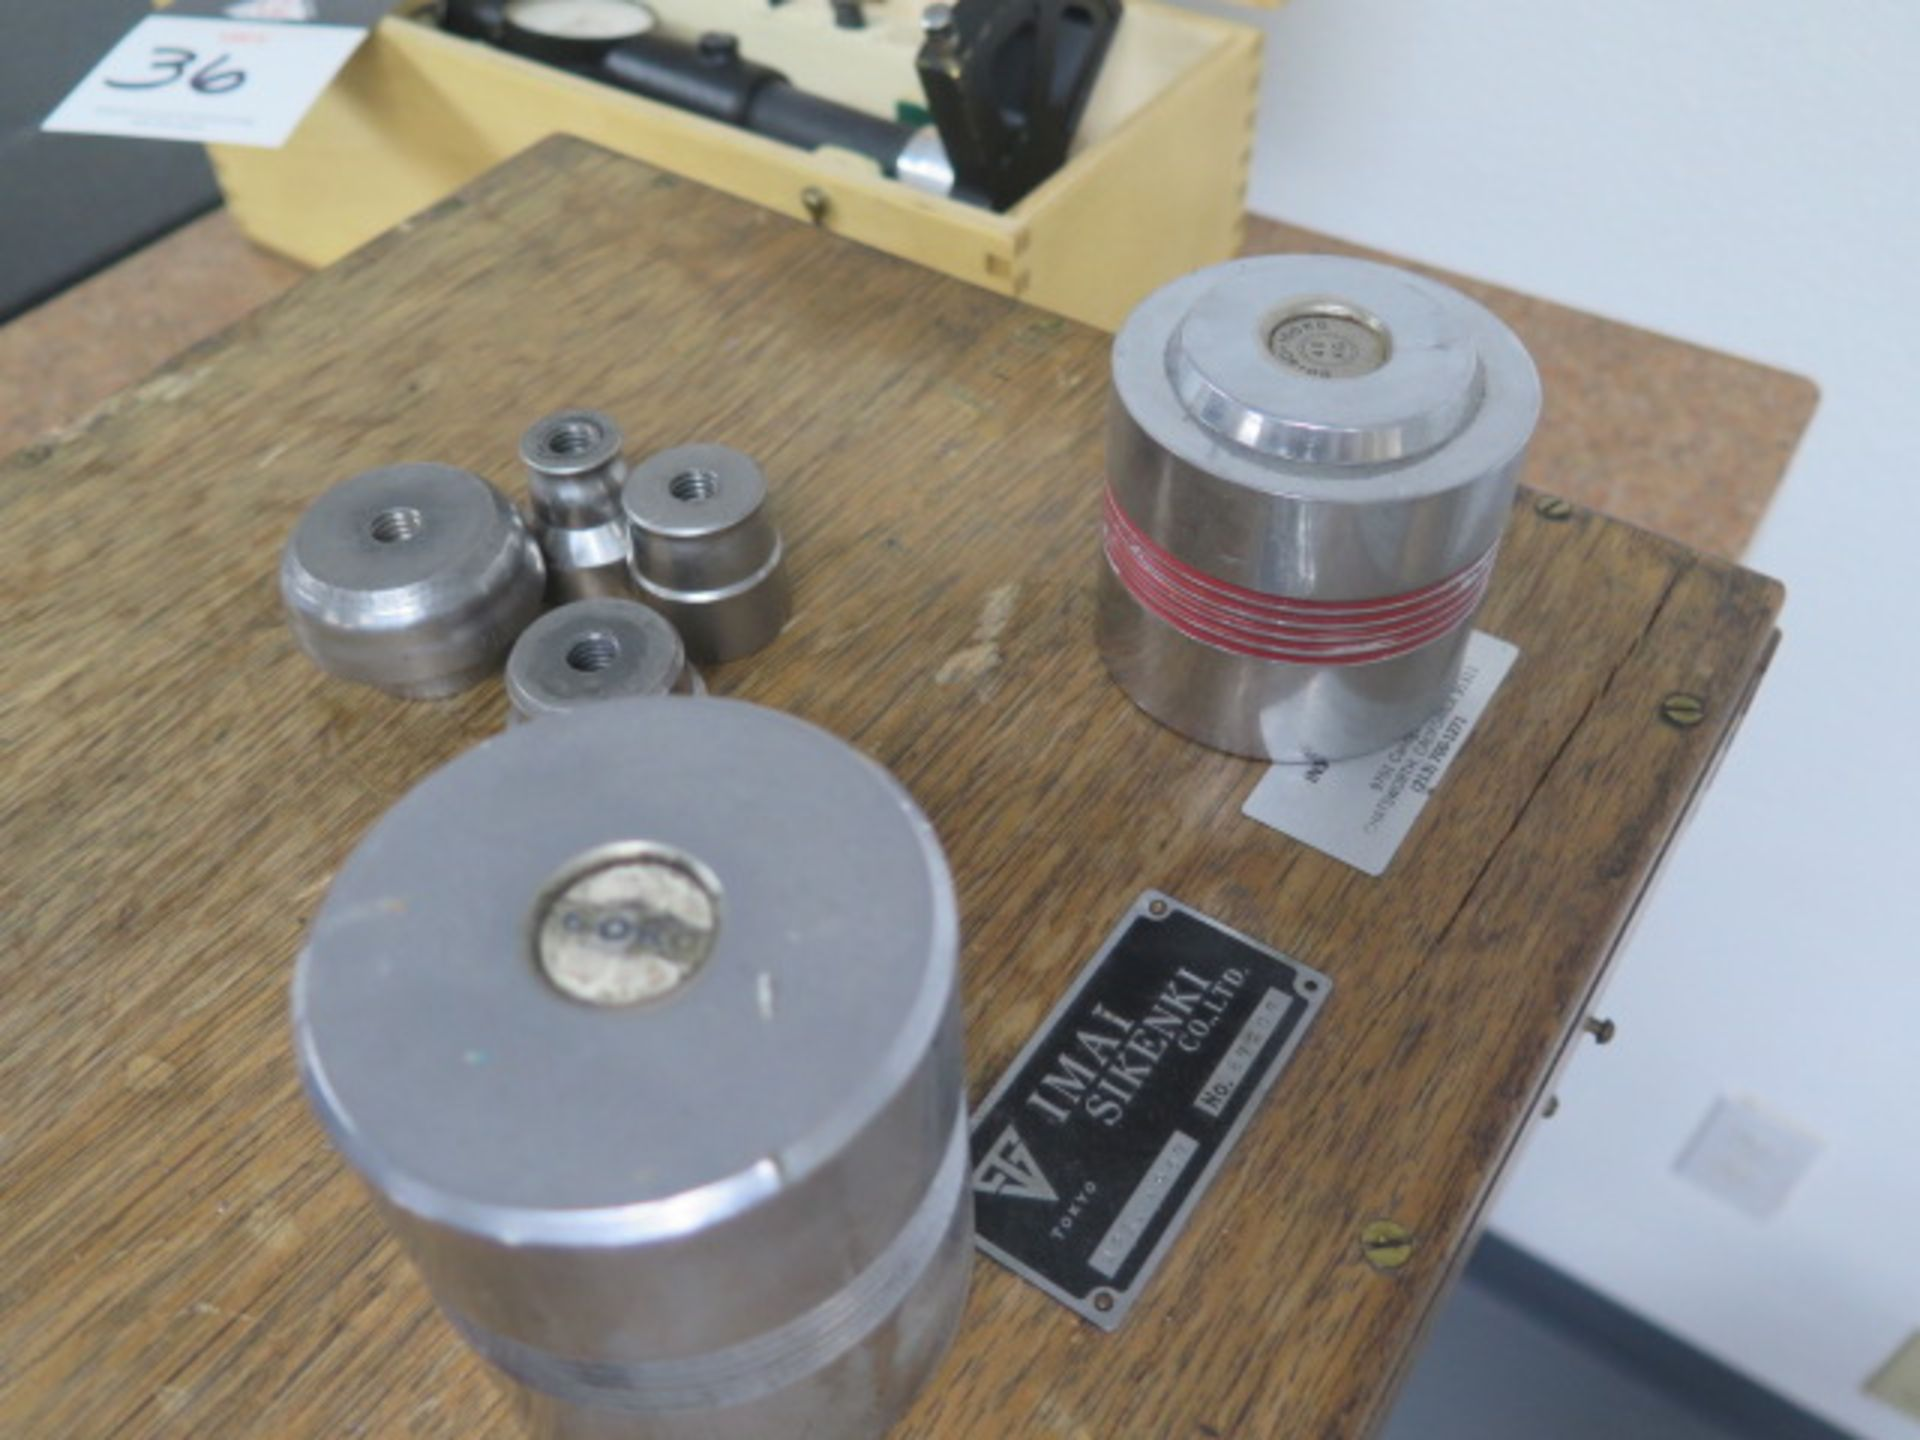 Rockwell Hardness Tester w/ Accessories (SOLD AS-IS - NO WARRANTY) - Image 8 of 9